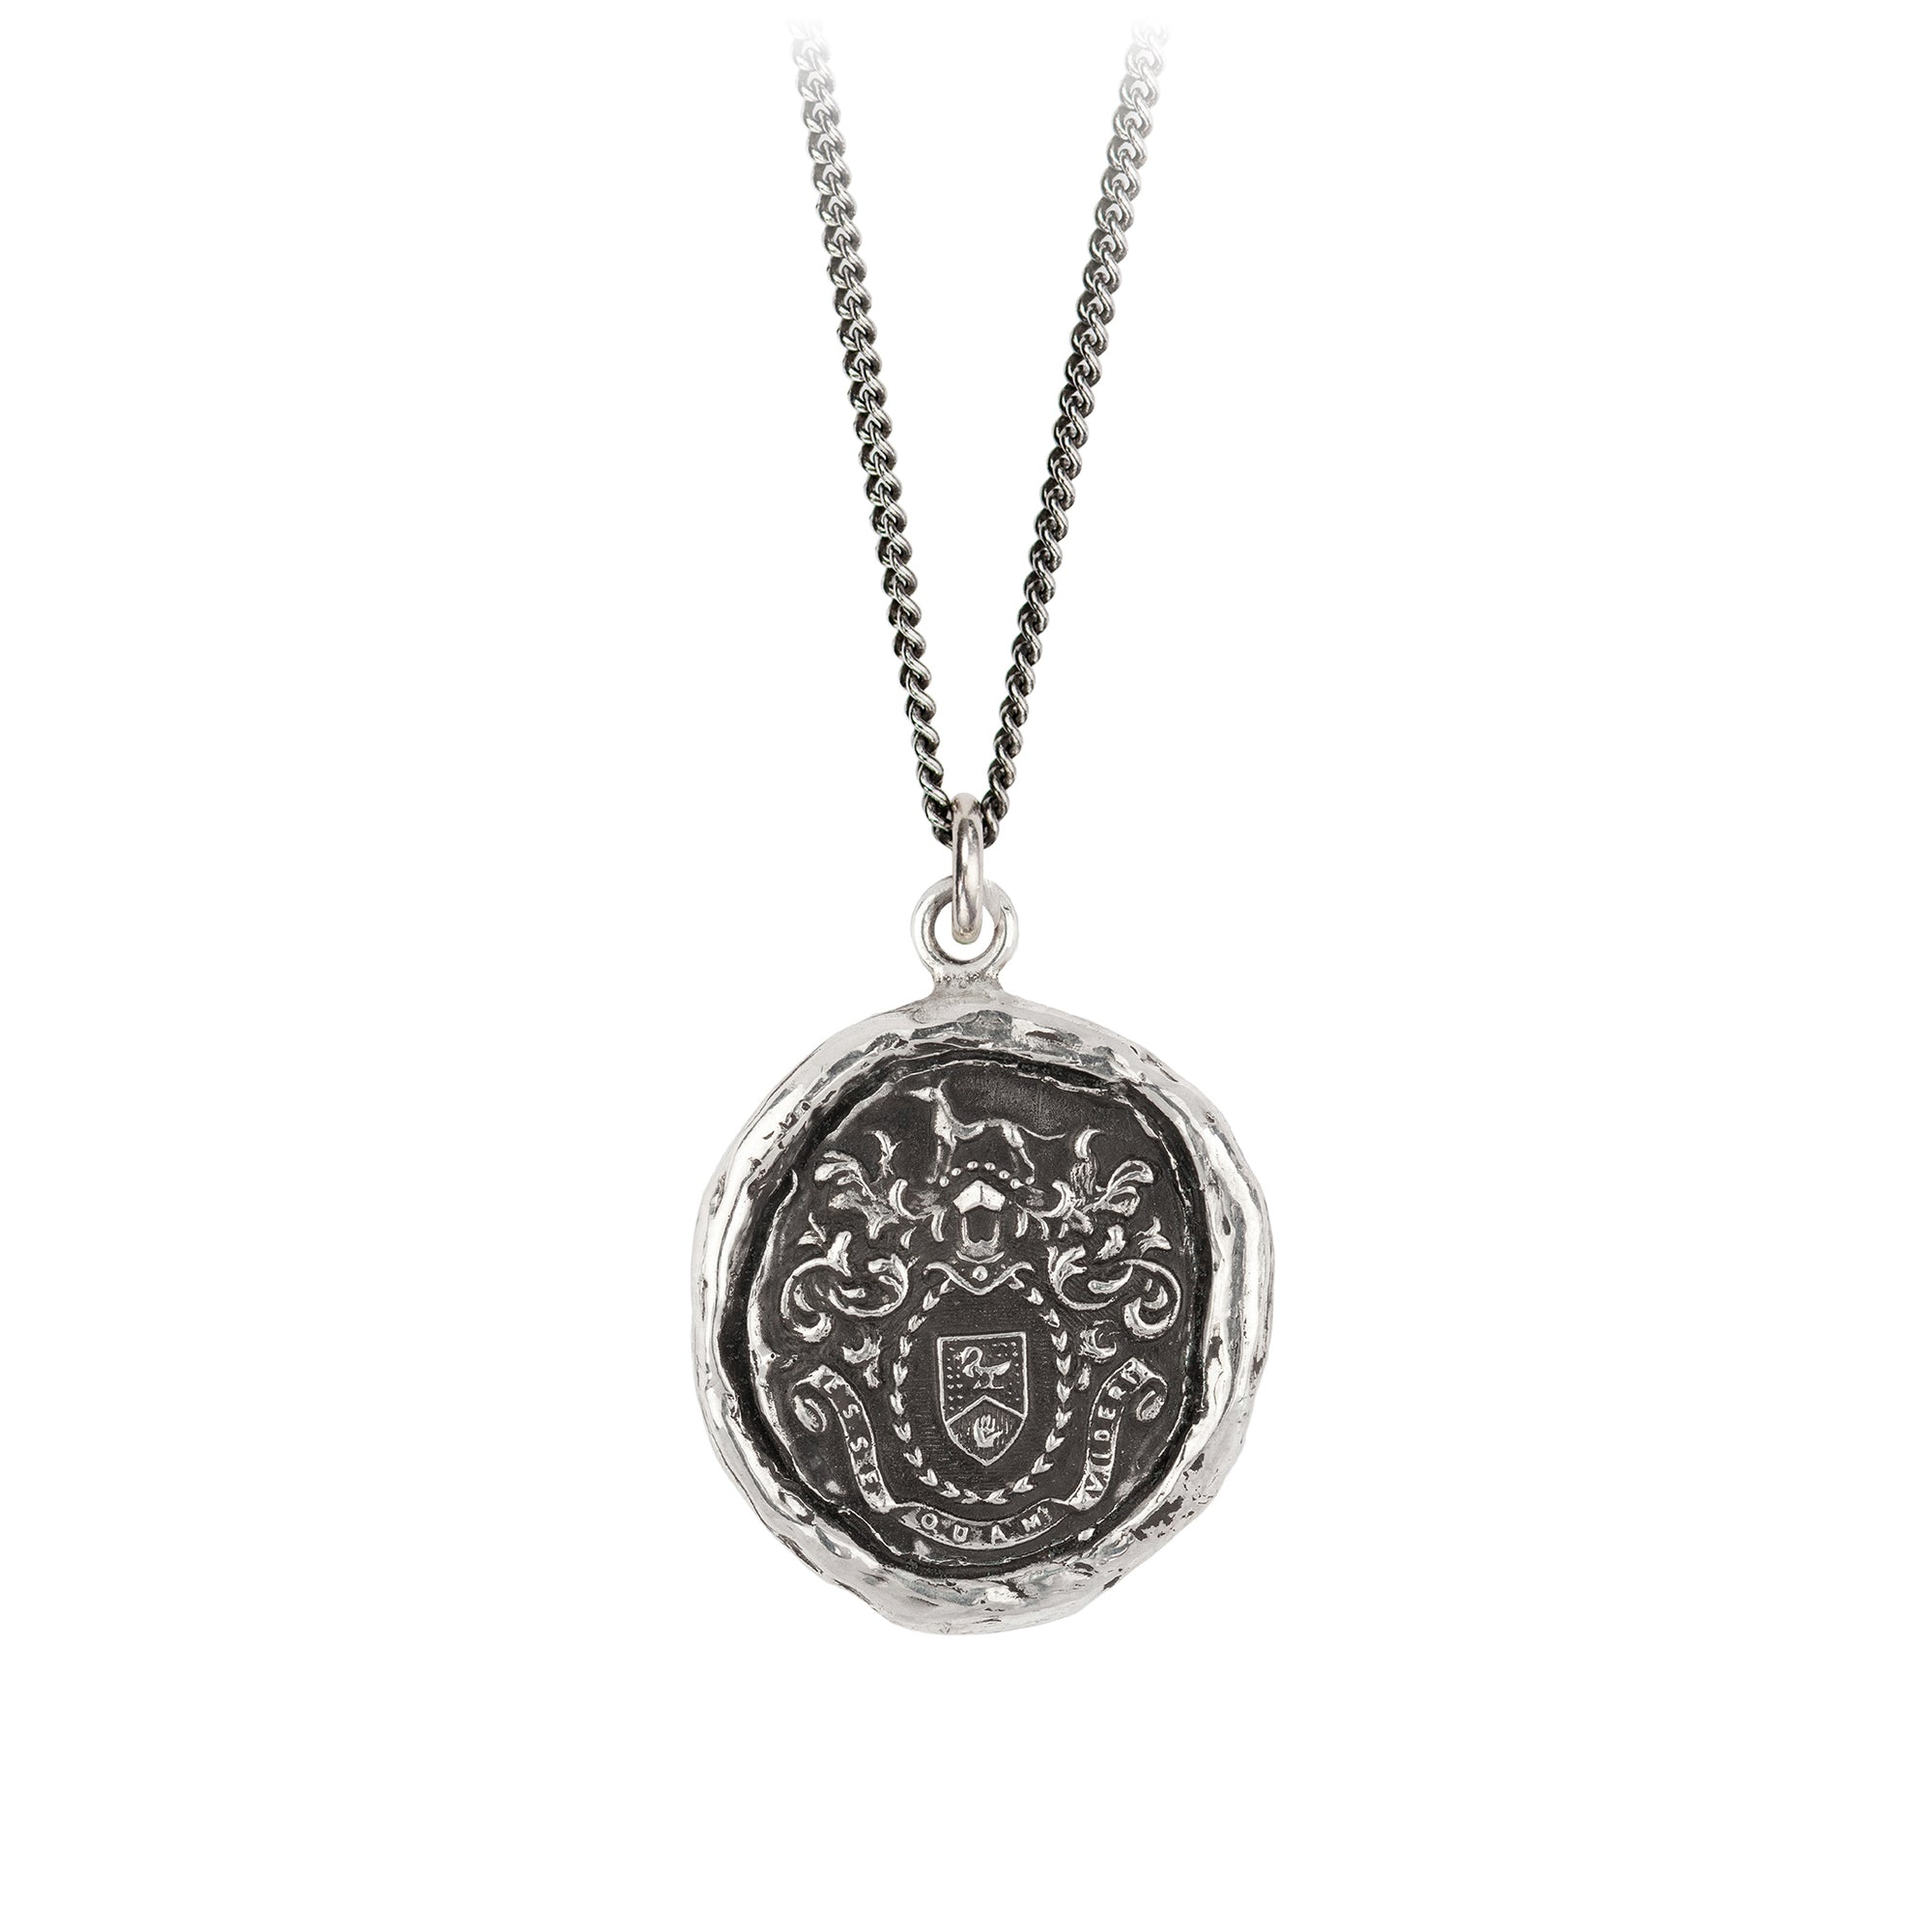 Pyrrha Authentic Talisman Necklace Silver